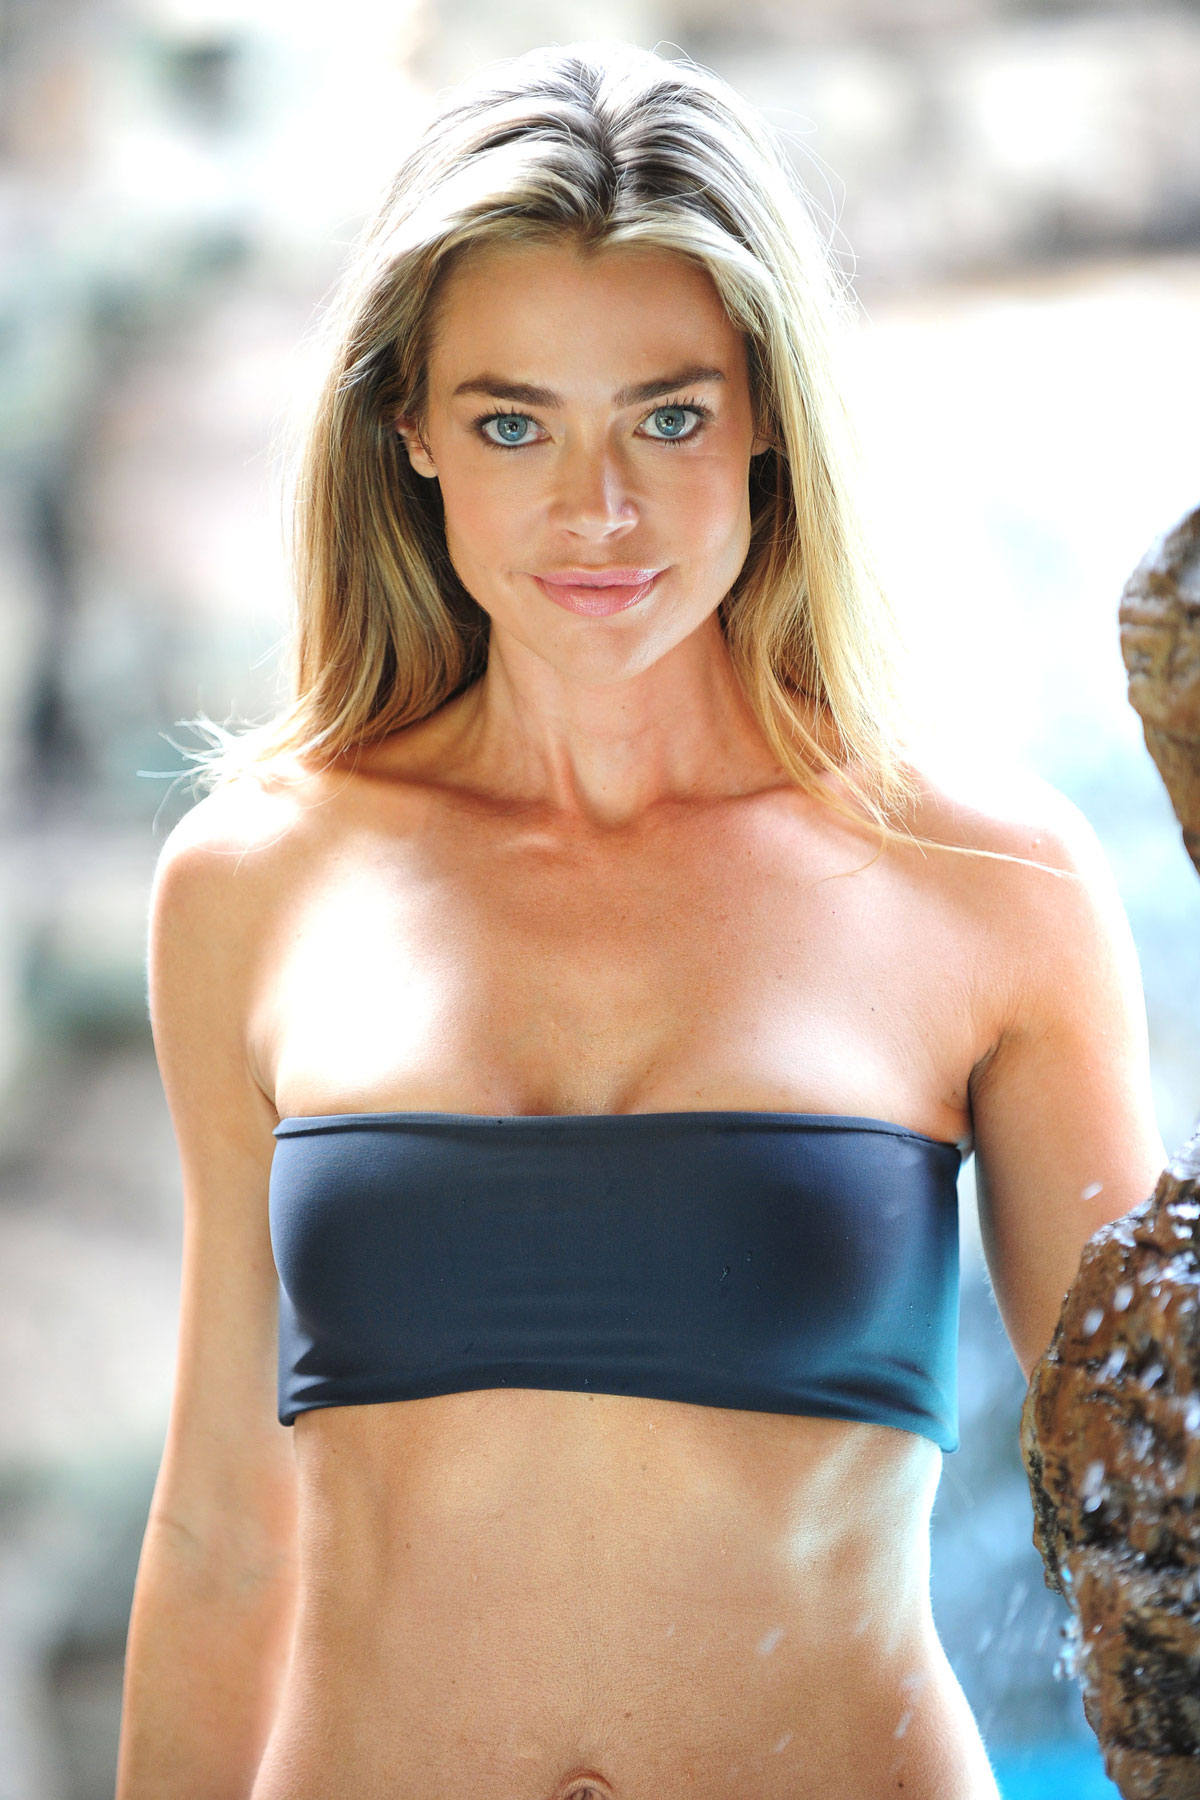 Denise Richards In Bikini For Photoshoot At A Poolside In